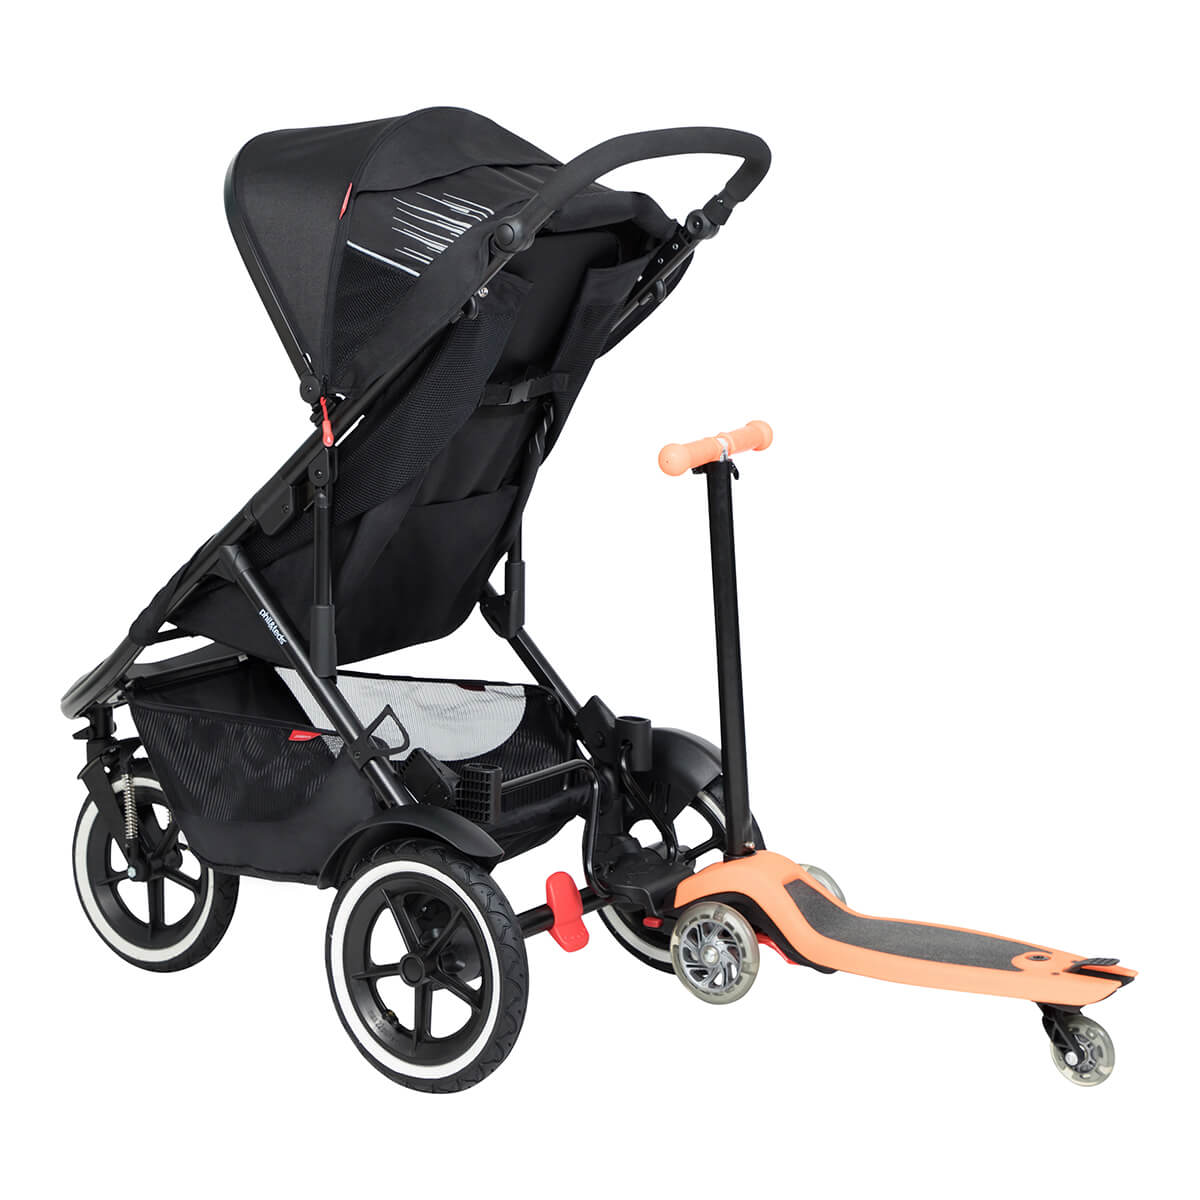 https://cdn.accentuate.io/4509527965784/19272668348504/philteds-sport-poussette-with-freerider-stroller-board-in-rear-v1626484398152.jpg?1200x1200